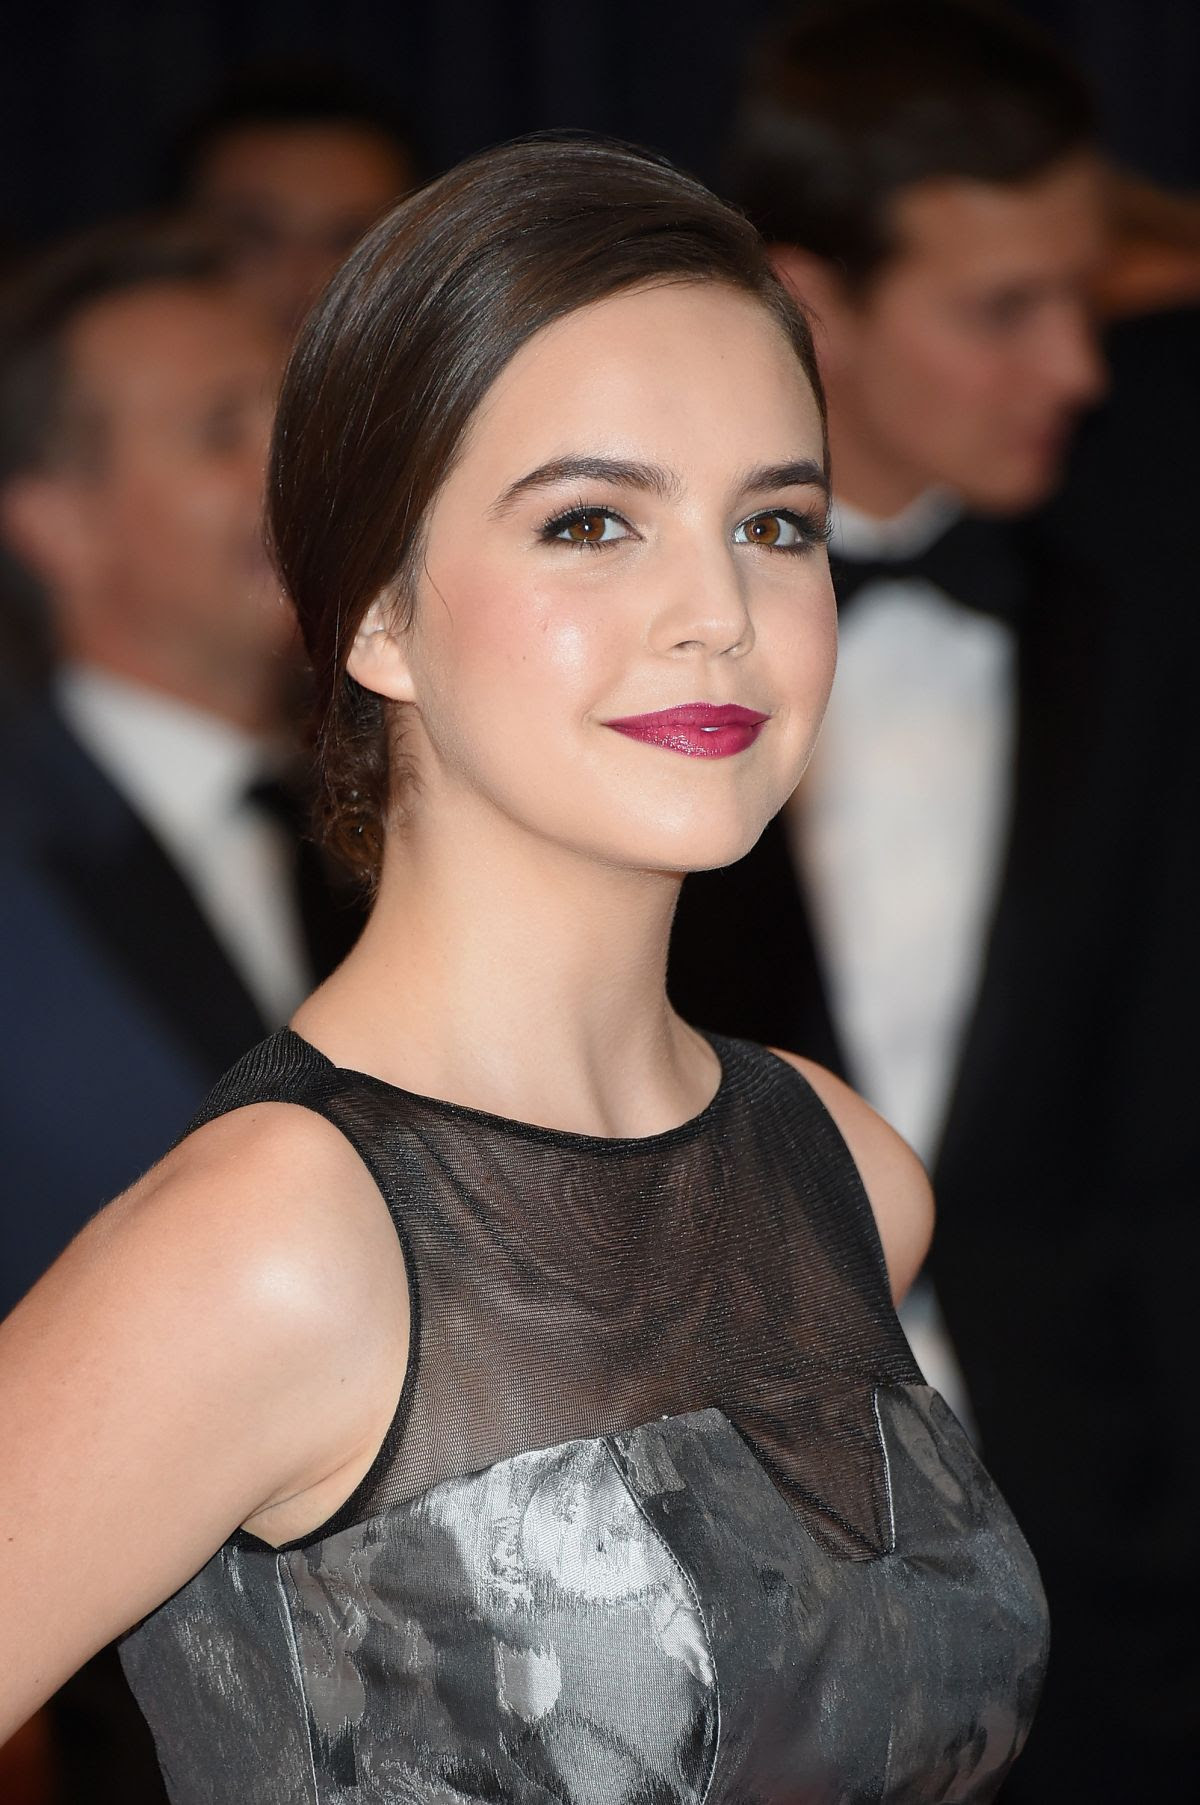 BAILEE MADISON at White House Correspondents Association Dinner in Washington